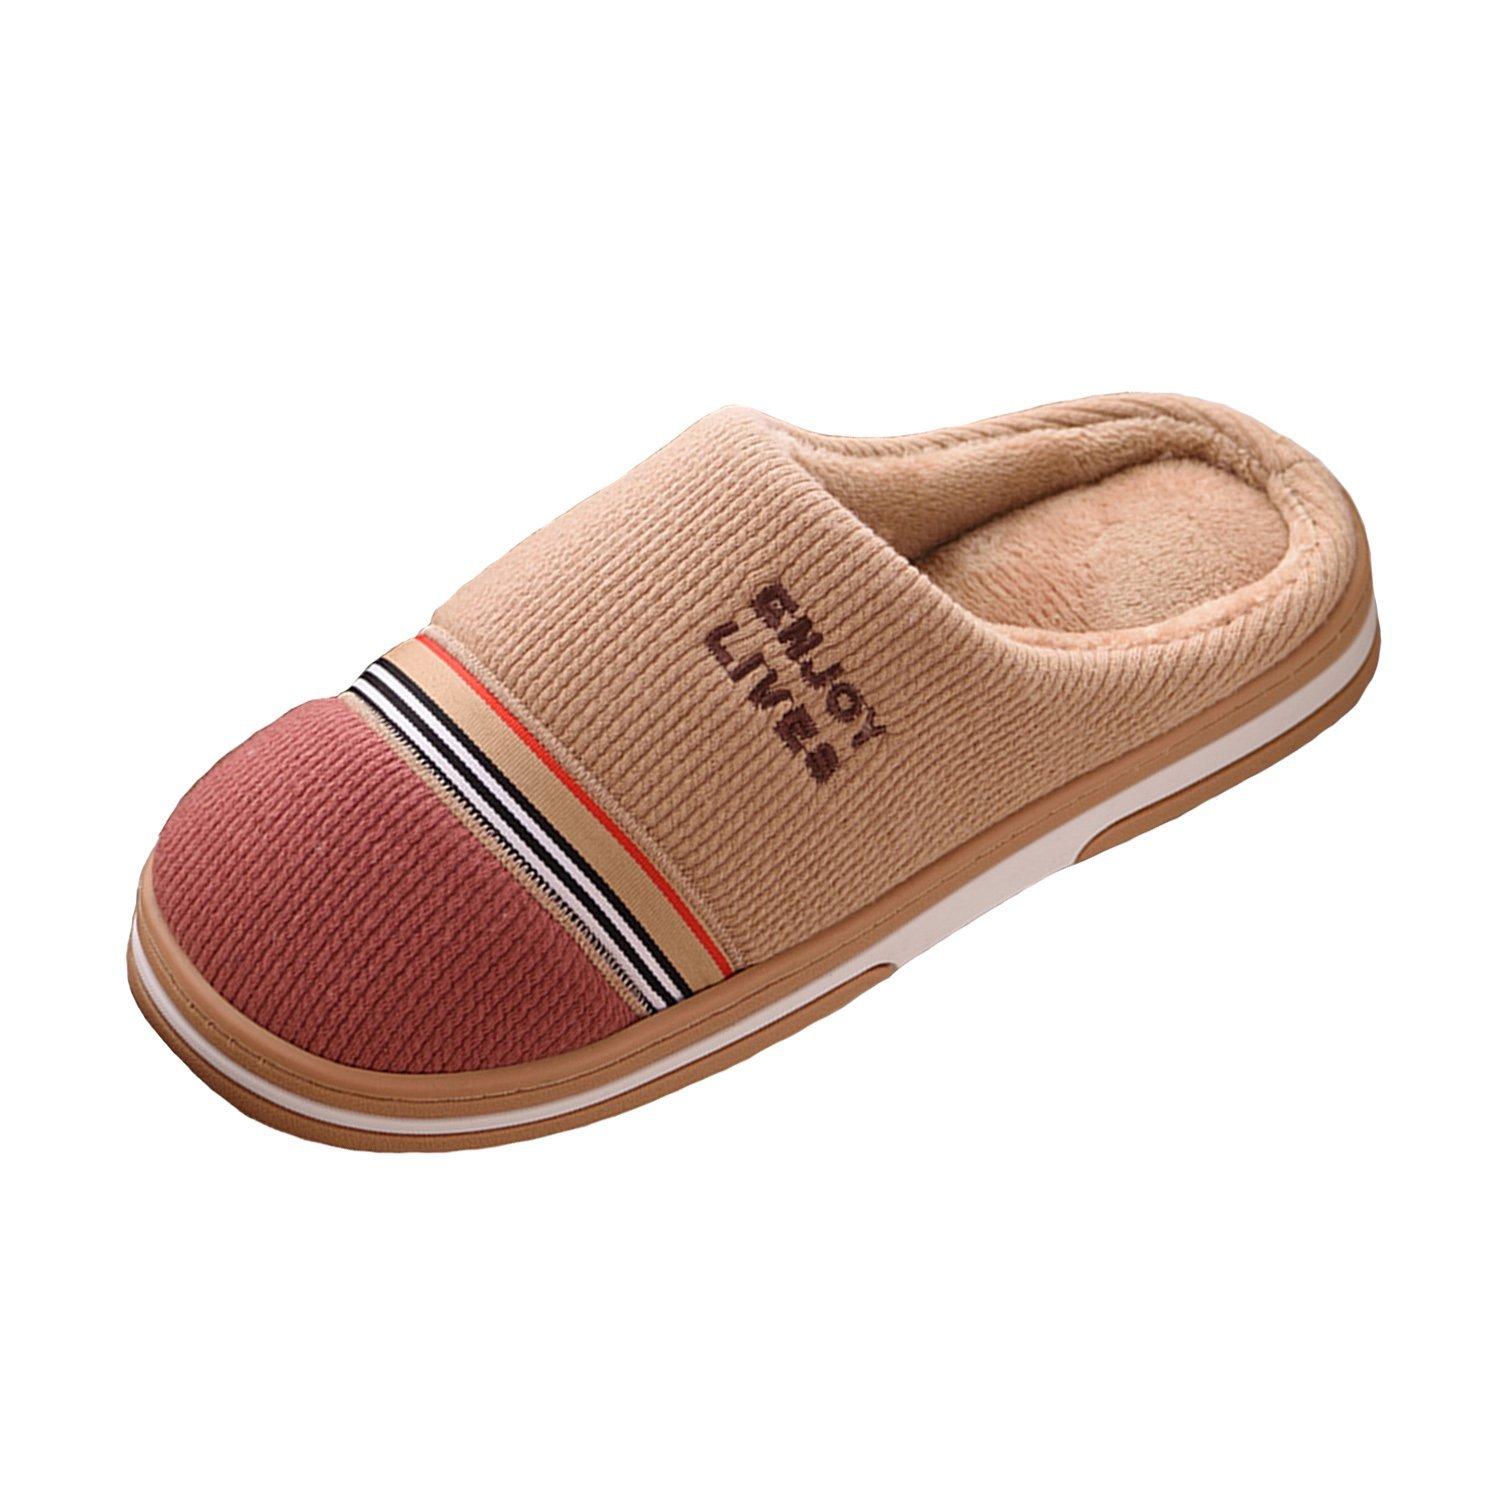 24f71bdcdcd Get Quotations · Womens and mens keep warm cotton slippers couple home non  - slip thick sole indoor room